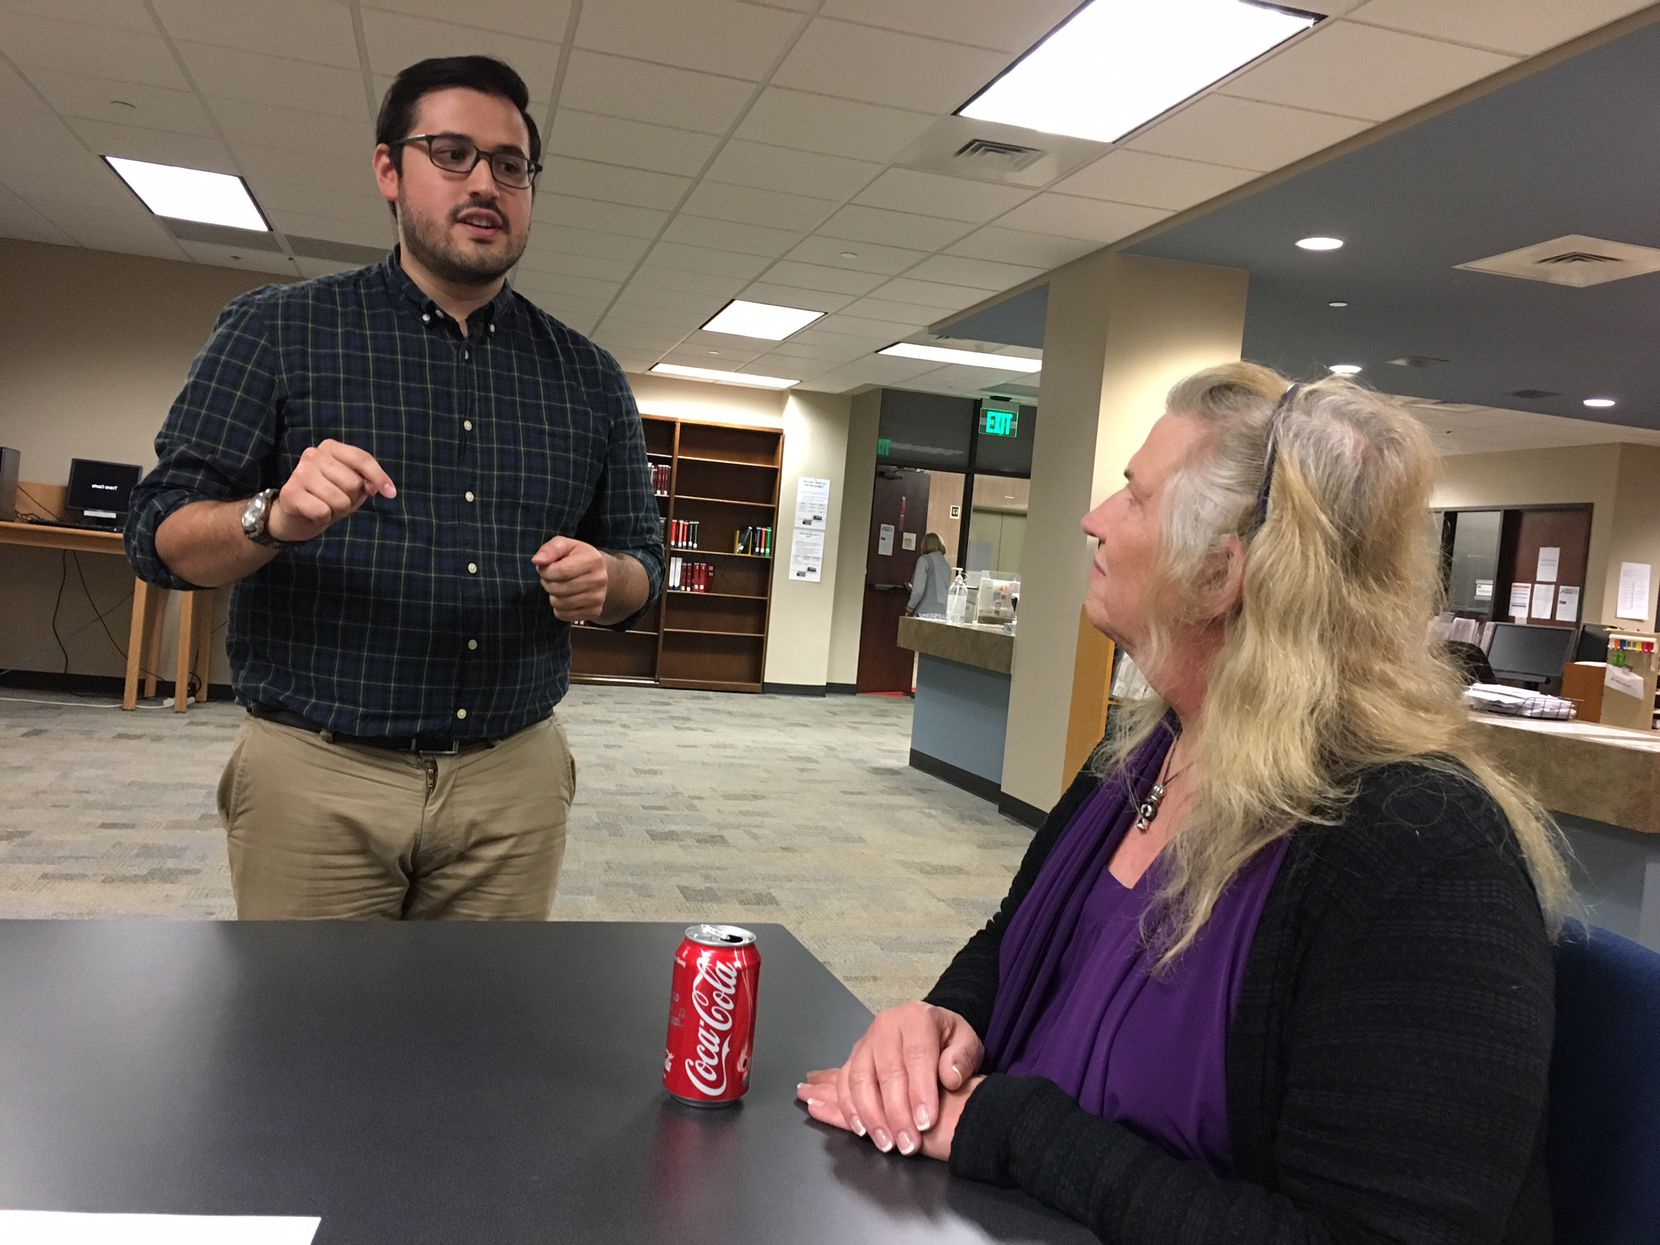 Cristian Sánchez (left) a third-year law student at the University of Texas at Austin, speaks with Claire Bow during a meeting of the Trans Name and Gender Marker Project at the Travis County Law Library. Sánchez is the pro bono scholar heading up the project. Bow is a former assistant attorney general assisting on the project.